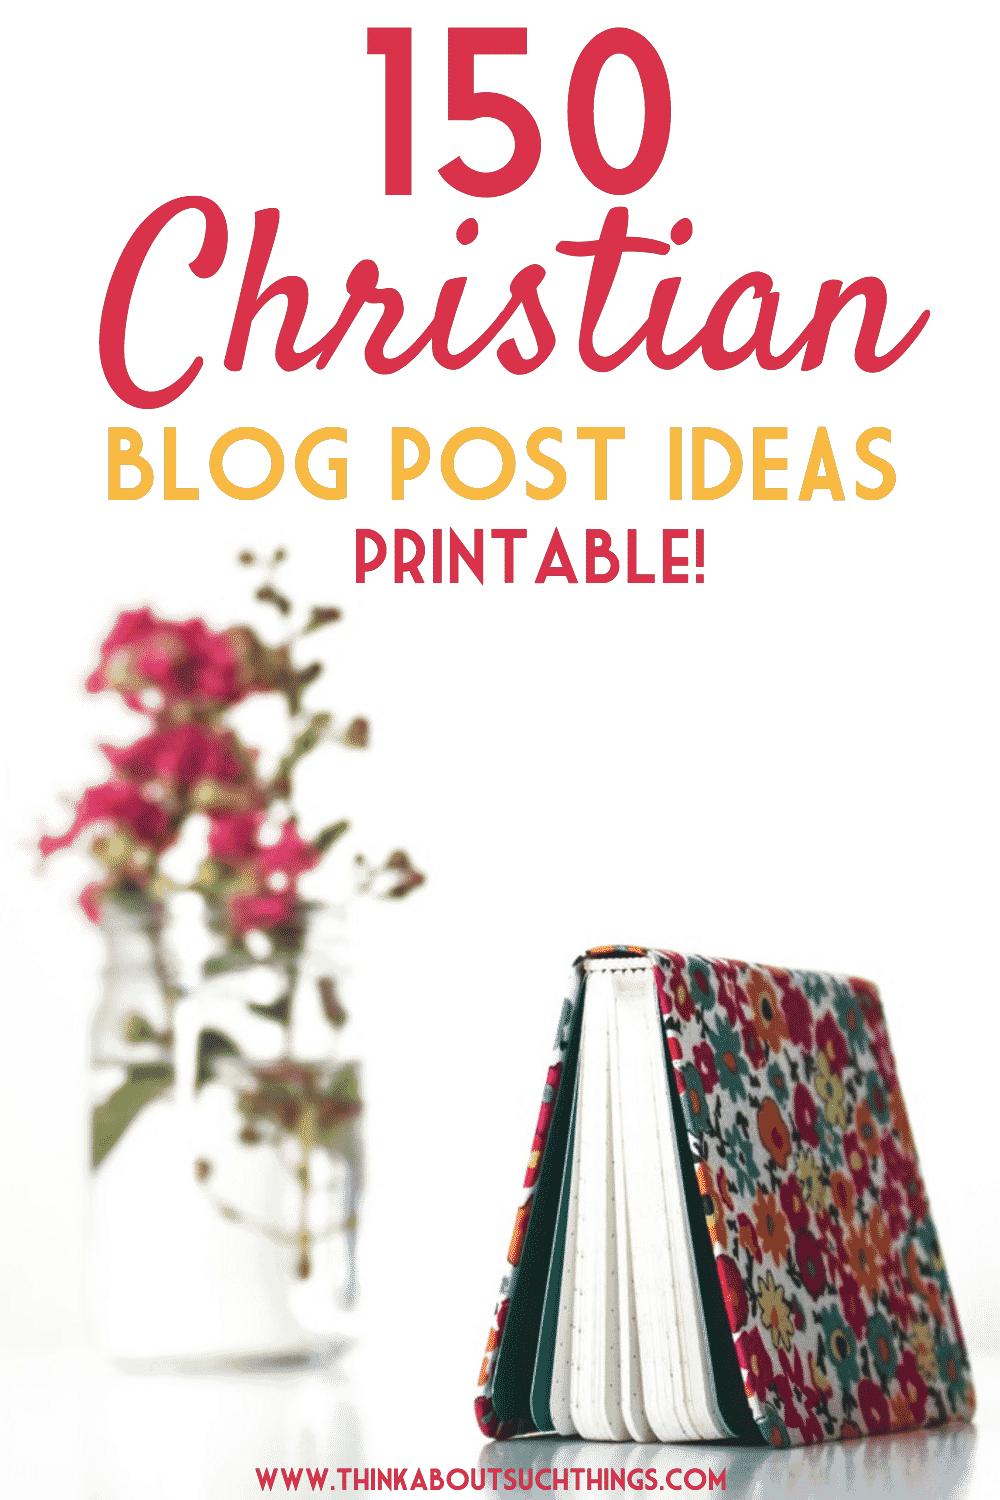 Christian blog post ideas